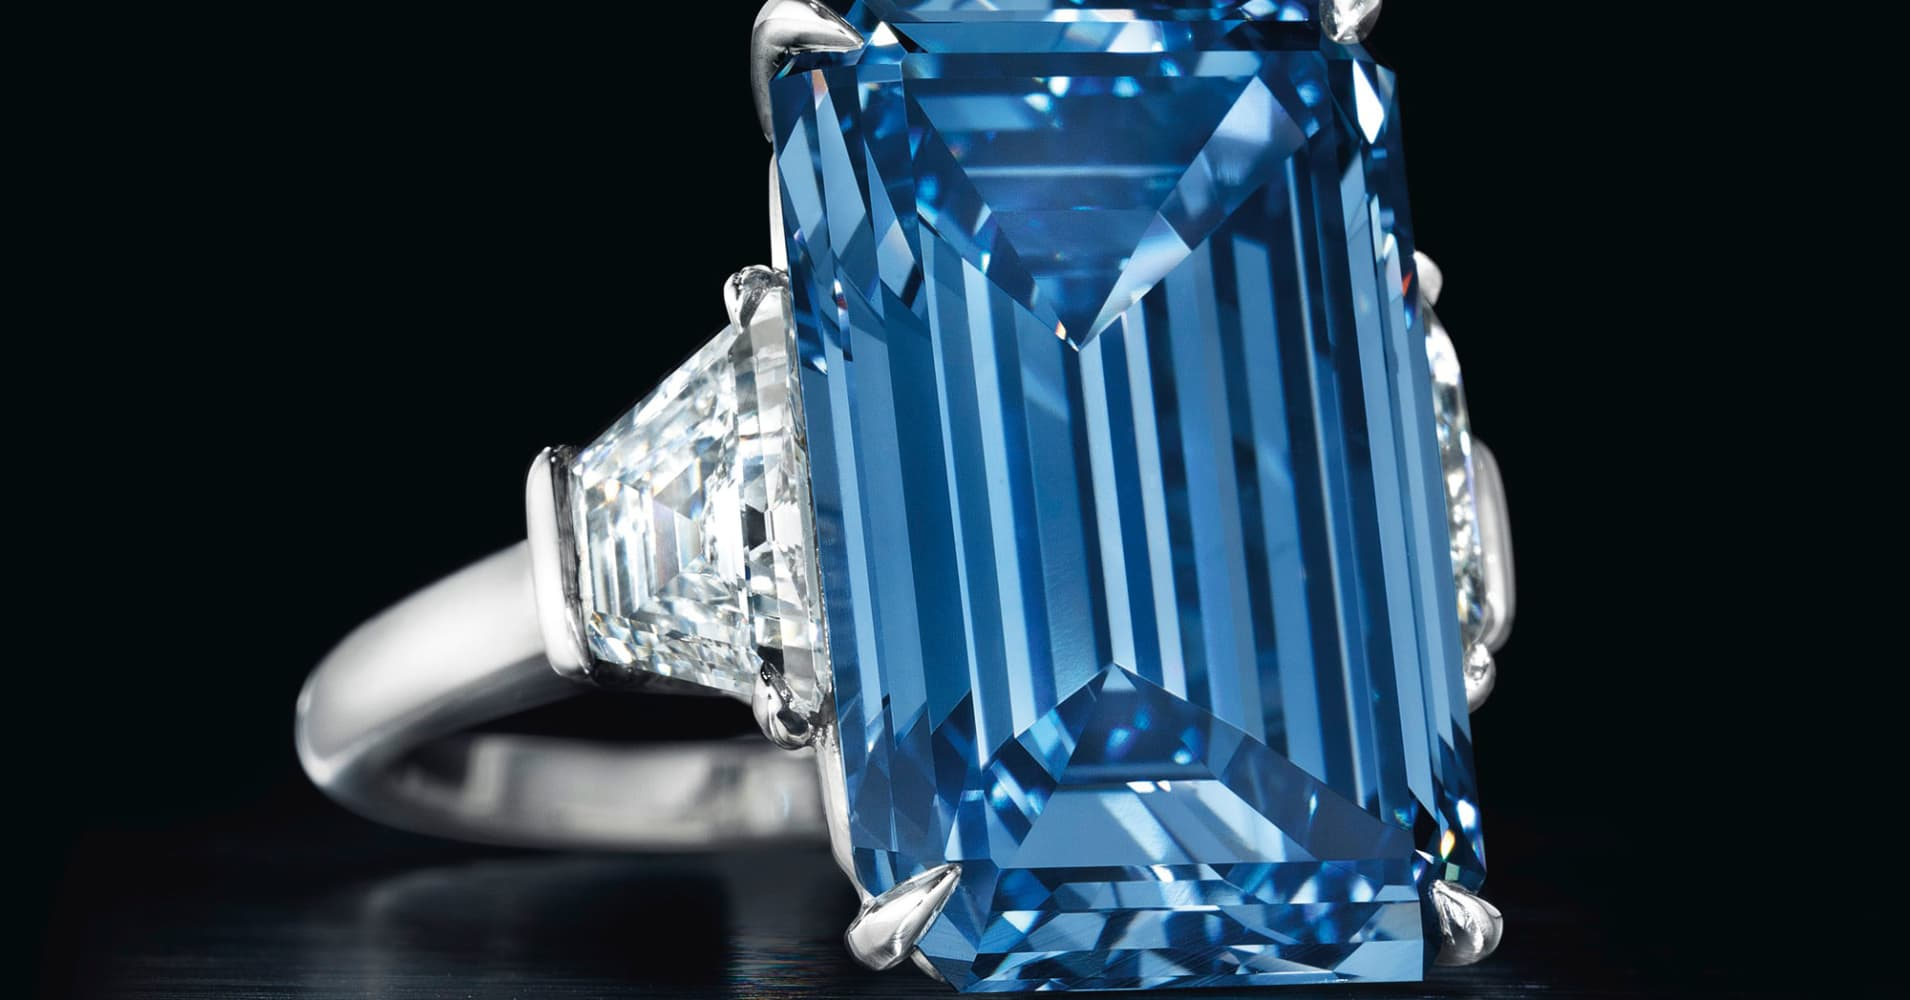 14.6-carat blue diamond could fetch $45 million